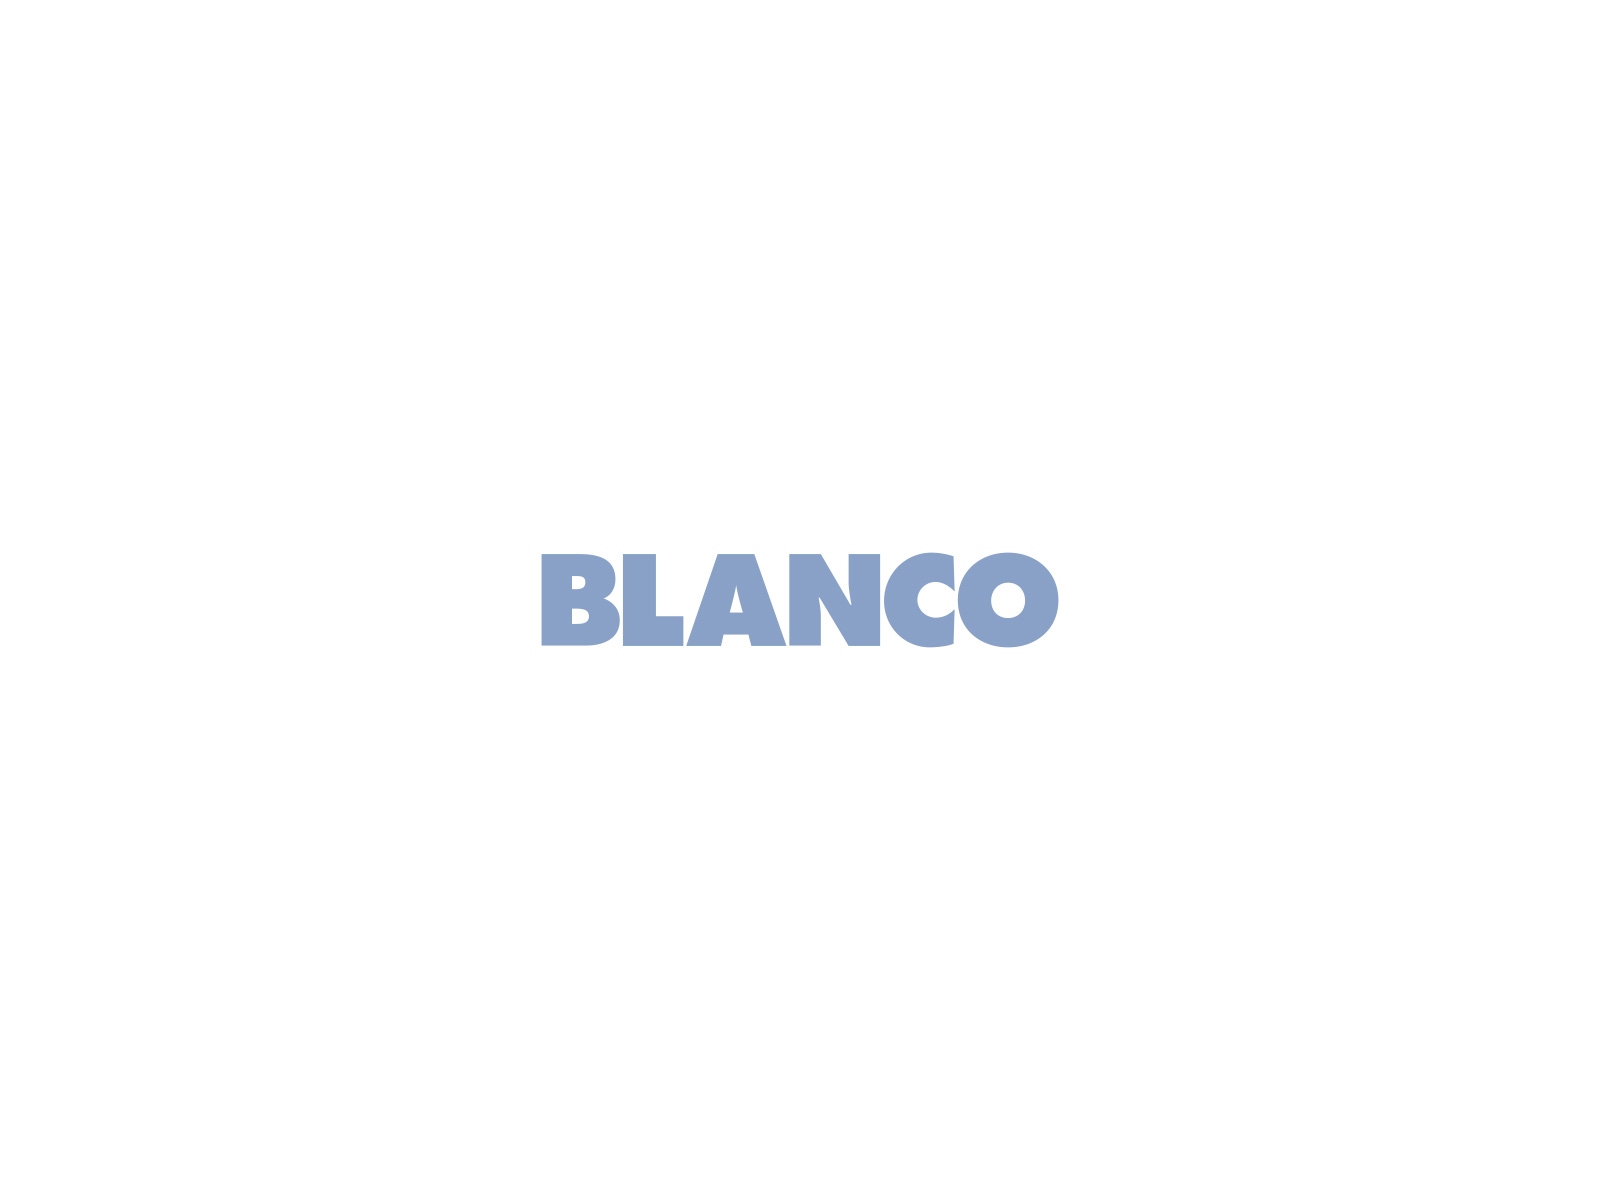 BLANCOSOLENTA-S Senso UltraResist Hebel links-03701507.jpg